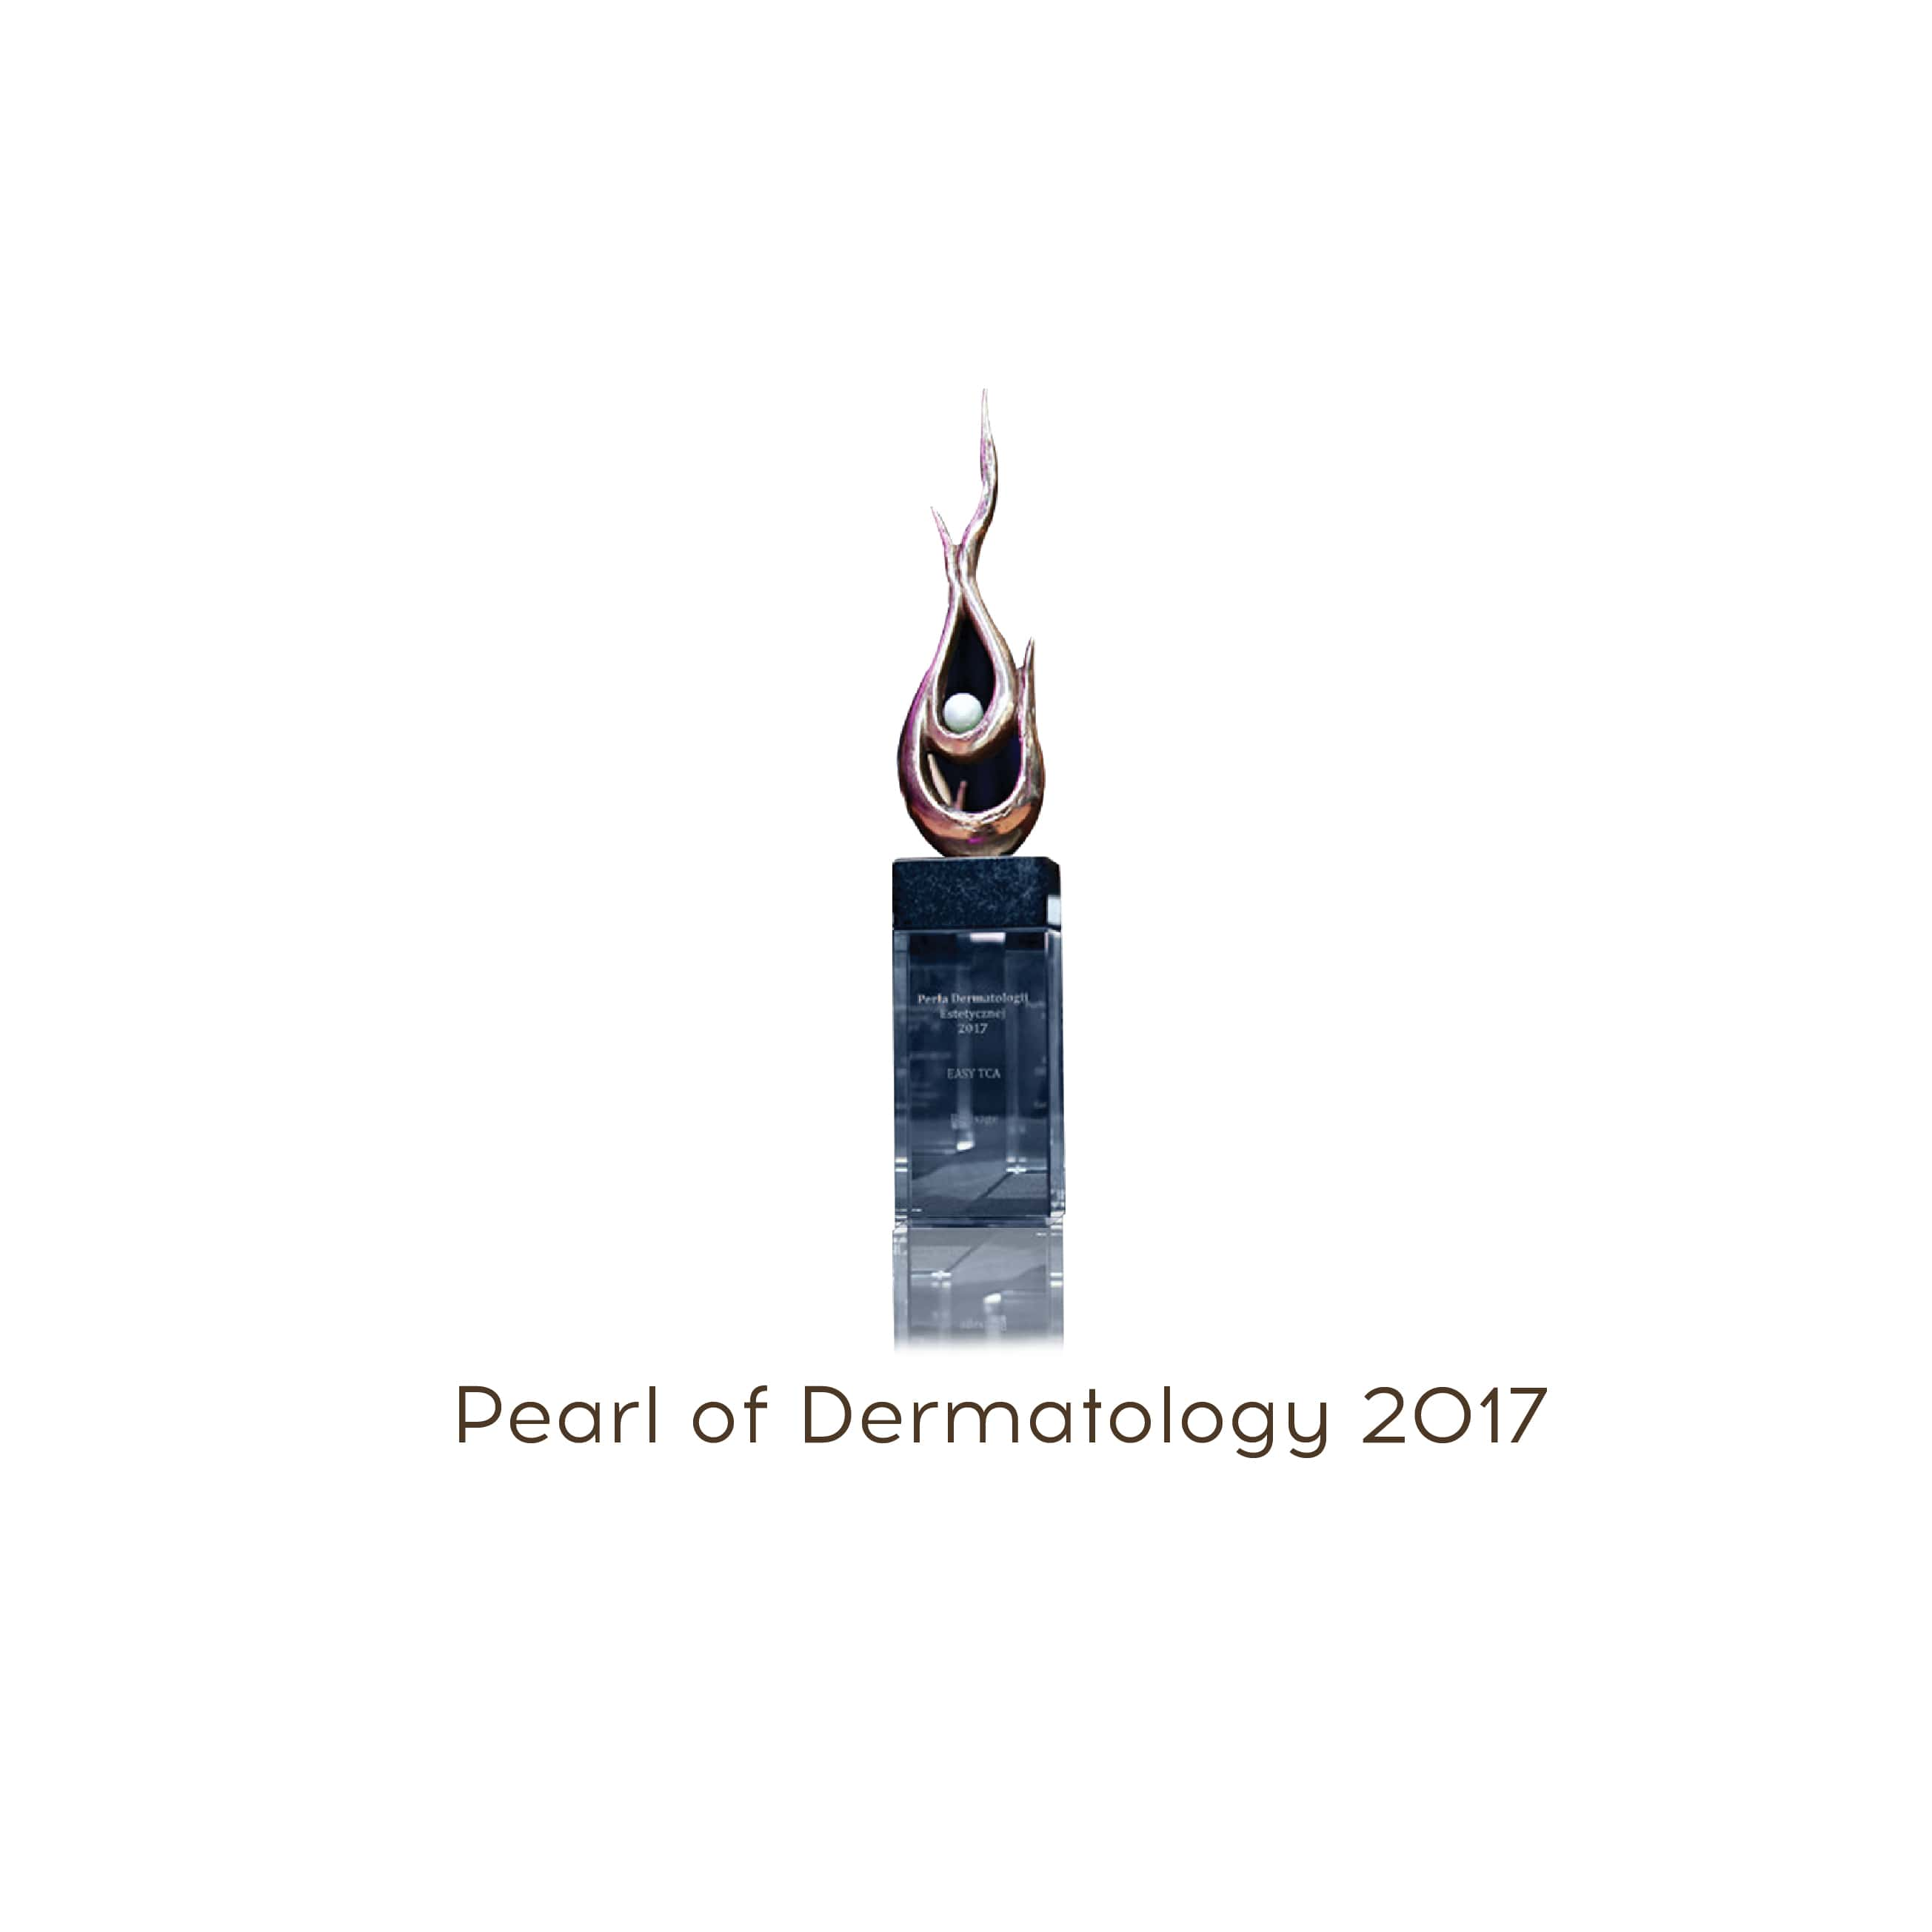 pearl of dermatology award